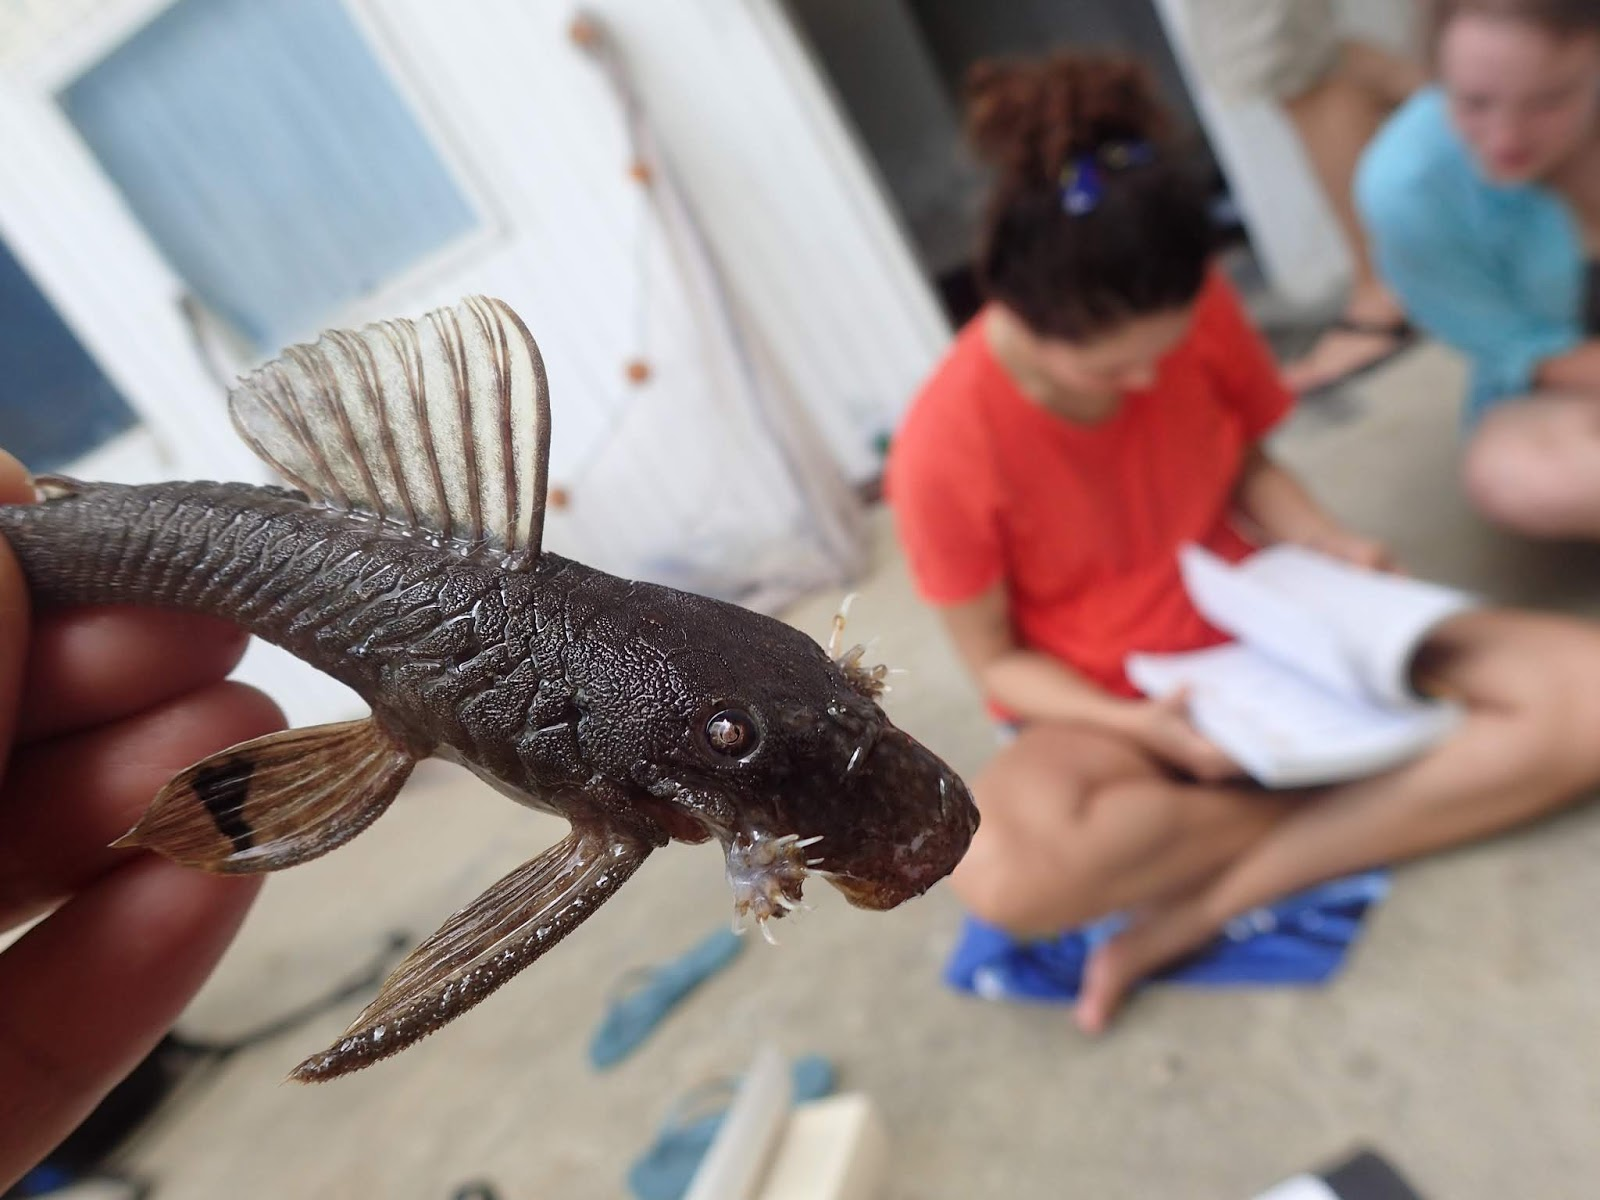 What the ichthyologist does